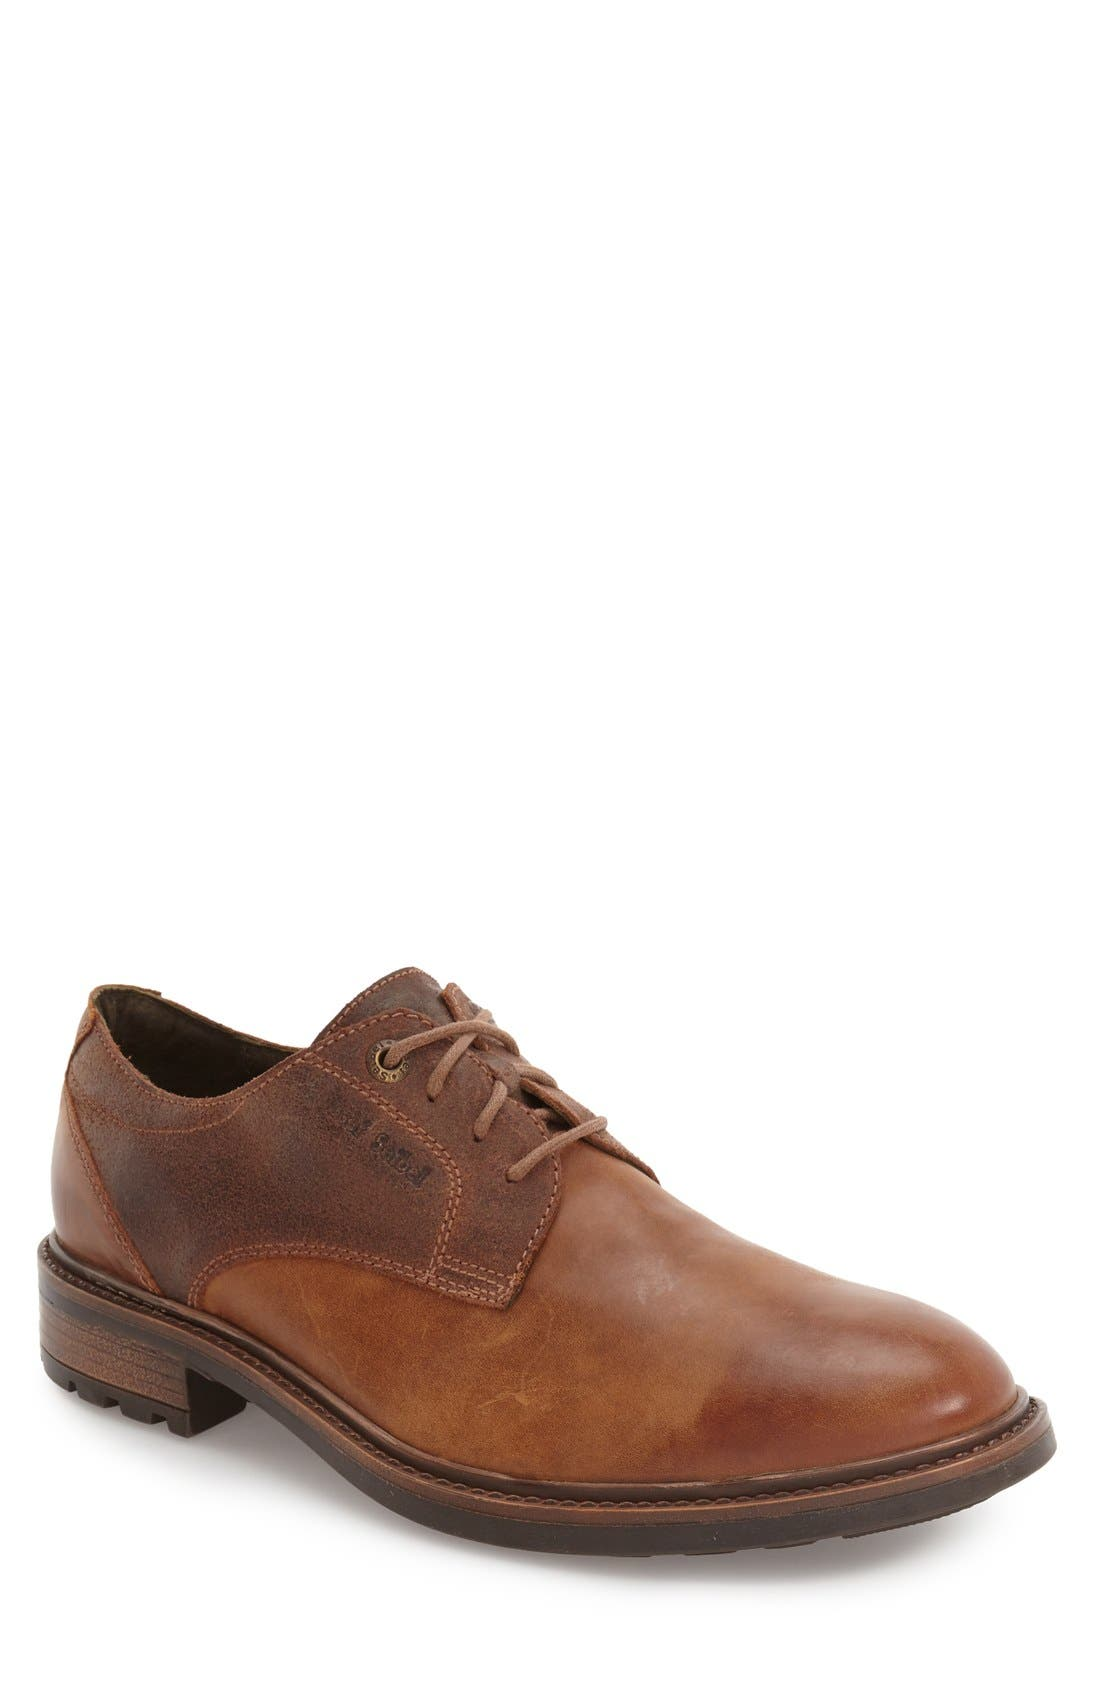 Oscar Plain Toe Derby,                             Main thumbnail 1, color,                             CASTAGNE LEATHER